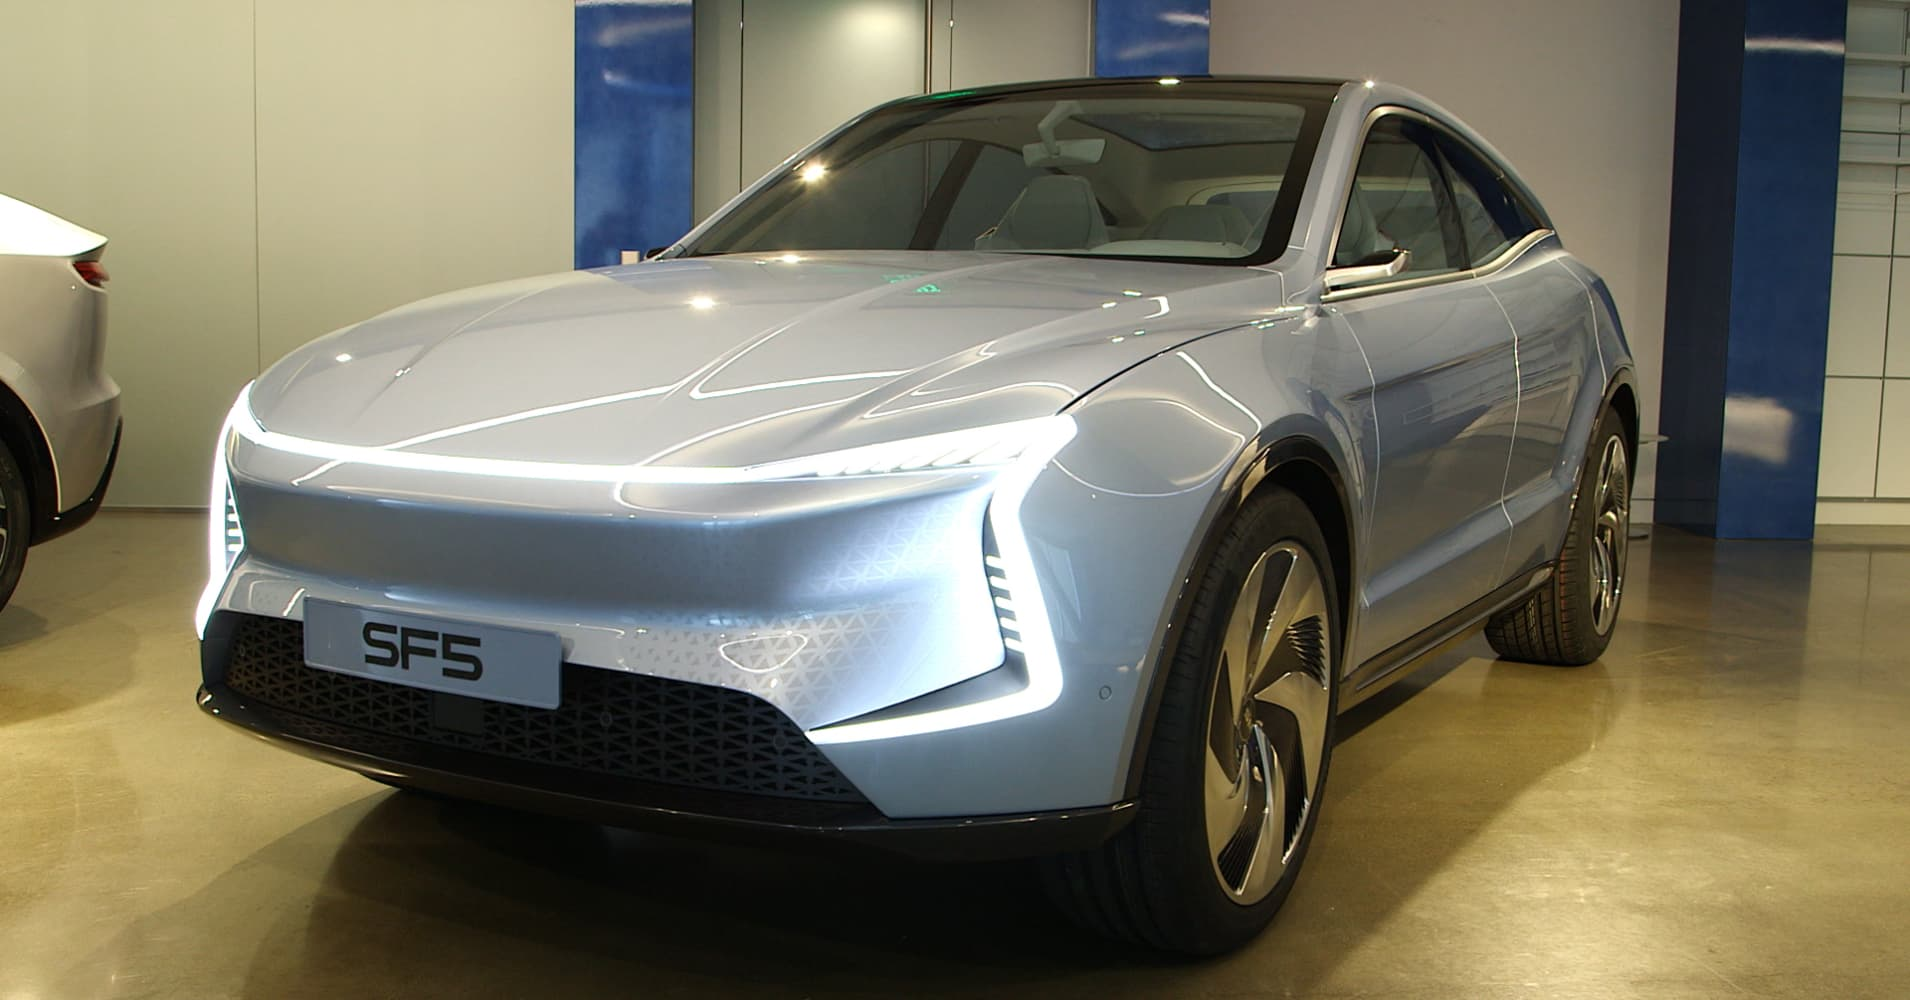 Sf Motors New Sf5 Is A Concept Car That Won T Let You